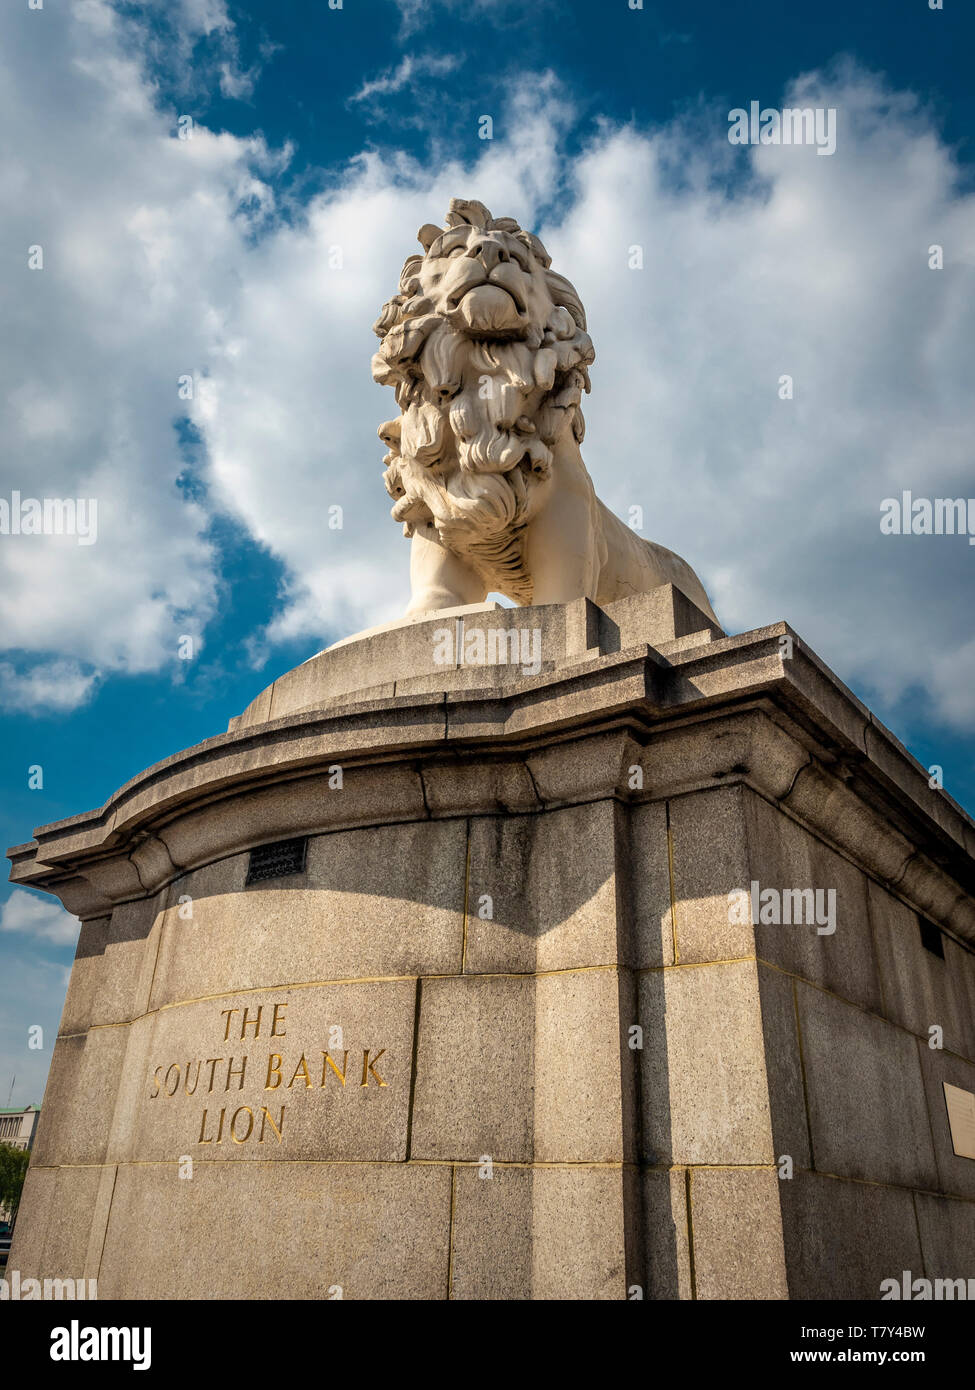 The South Bank Lion, (Red Lion), a Coade stone sculpture of a standing male lion cast in 1837 Westminster Bridge, London, UK. Stock Photo